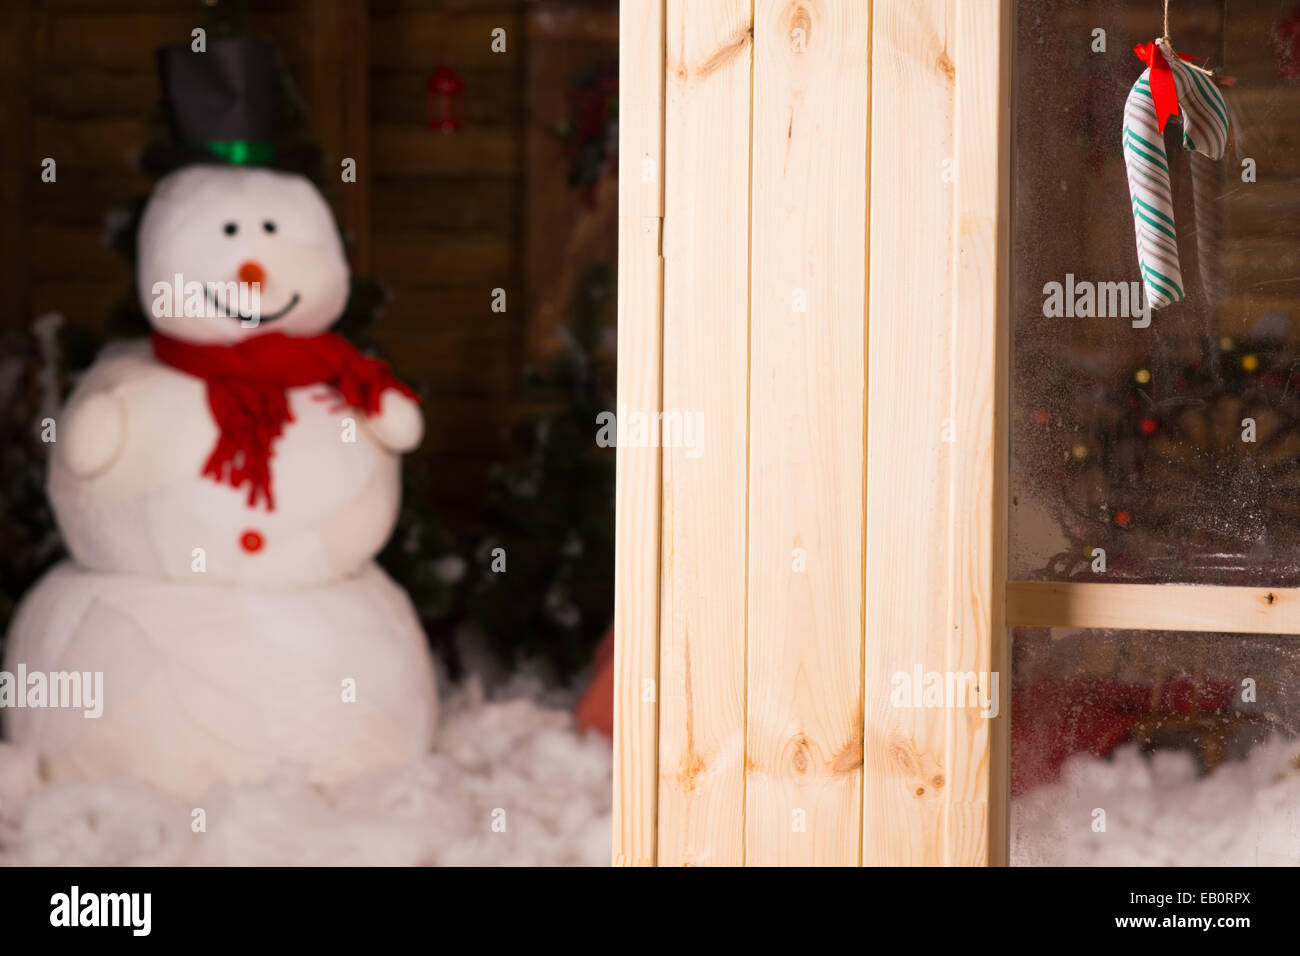 Macro Colored Small Candy Cane Hanging on Glass Window with Snowman and Christmas Decors Inside the House. - Stock Image